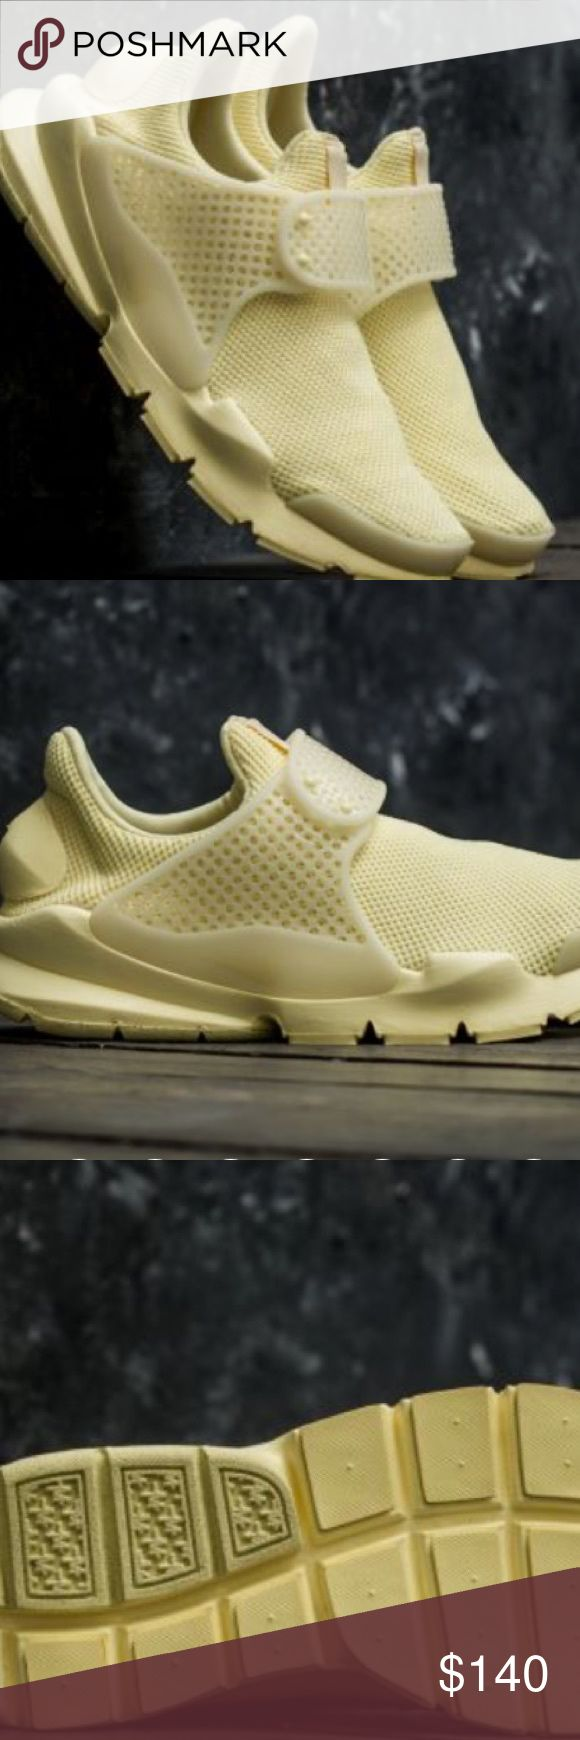 Nike Sock Dart Lemon chiffon Brand new, never worn.  Guaranteed compliments everywhere you go. Extremely comfortable unlike any other. Looks great with black, white our grey outfits. Men's size 6= Women's size 8. Nike Shoes Sneakers